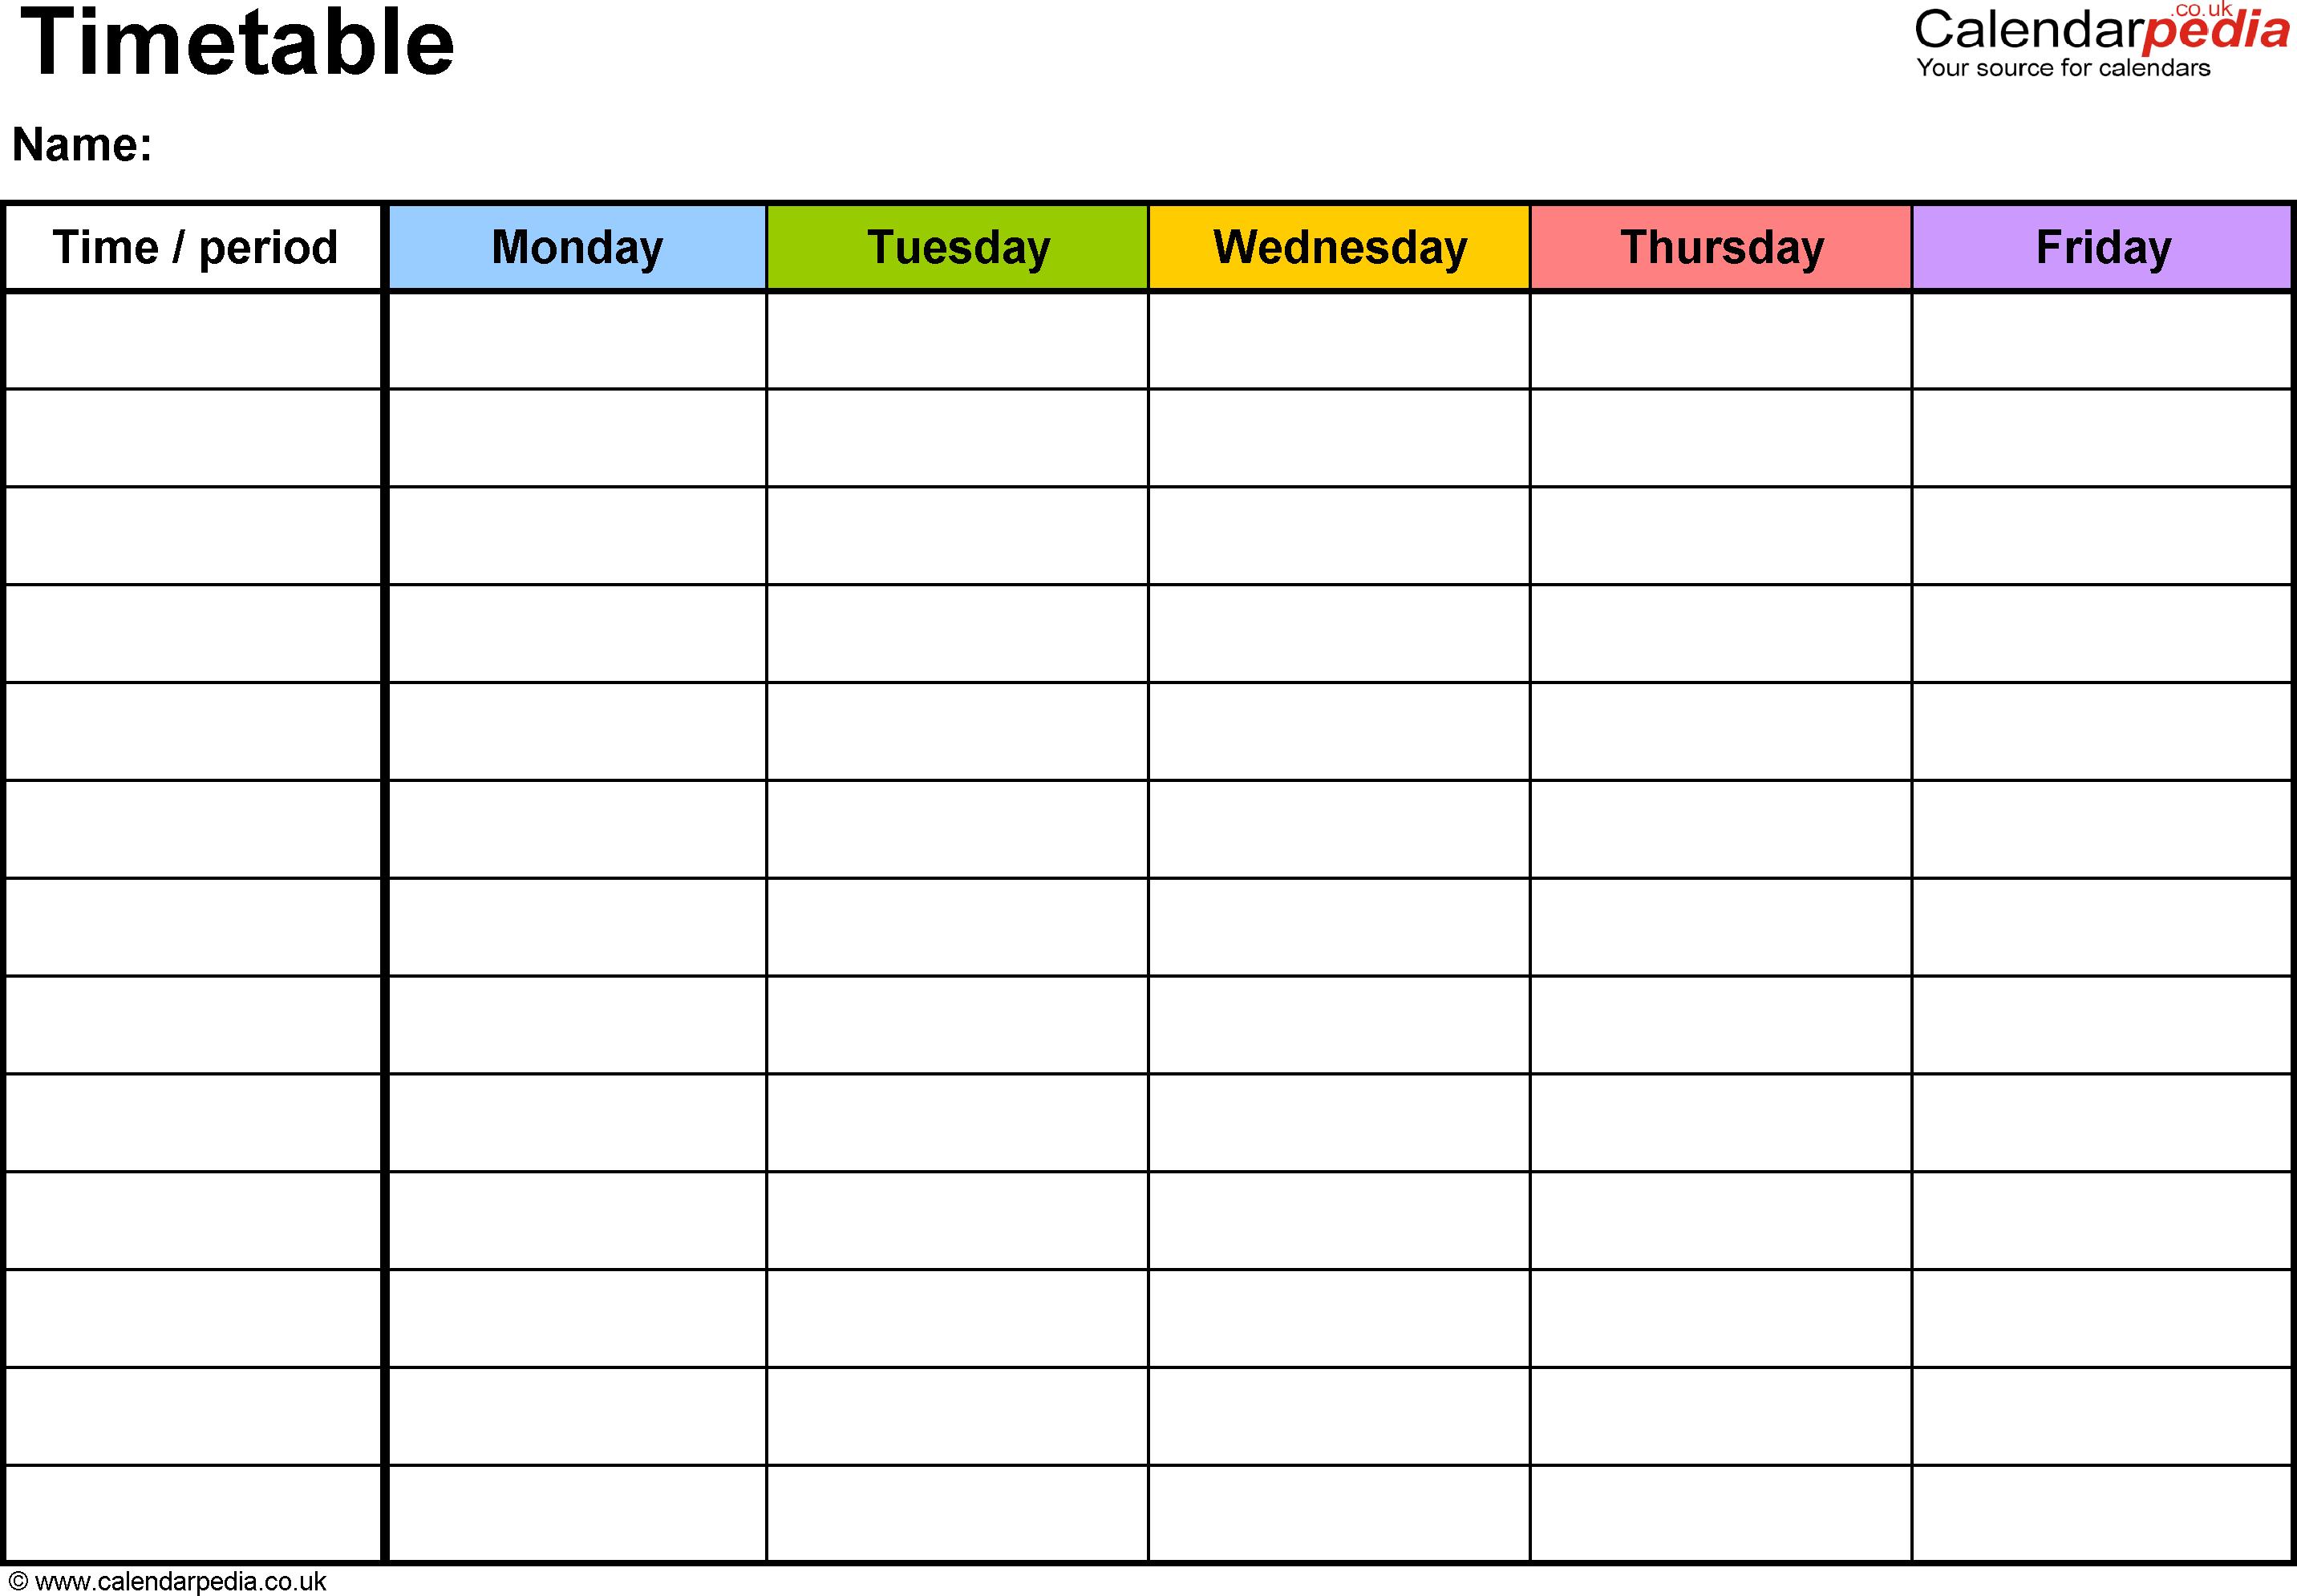 Timetable Templates For Microsoft Excel - Free And Printable inside Frame Birthday Calendar Templates Free